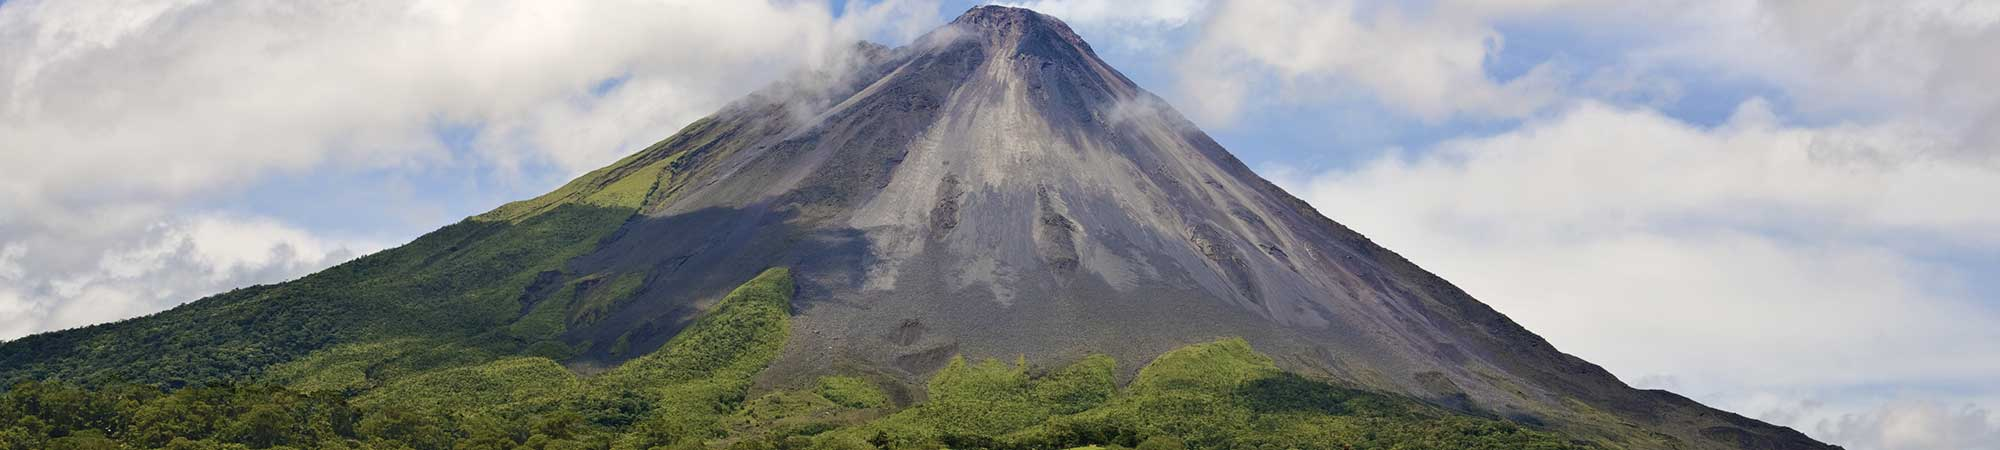 Costa-Rica-arenal